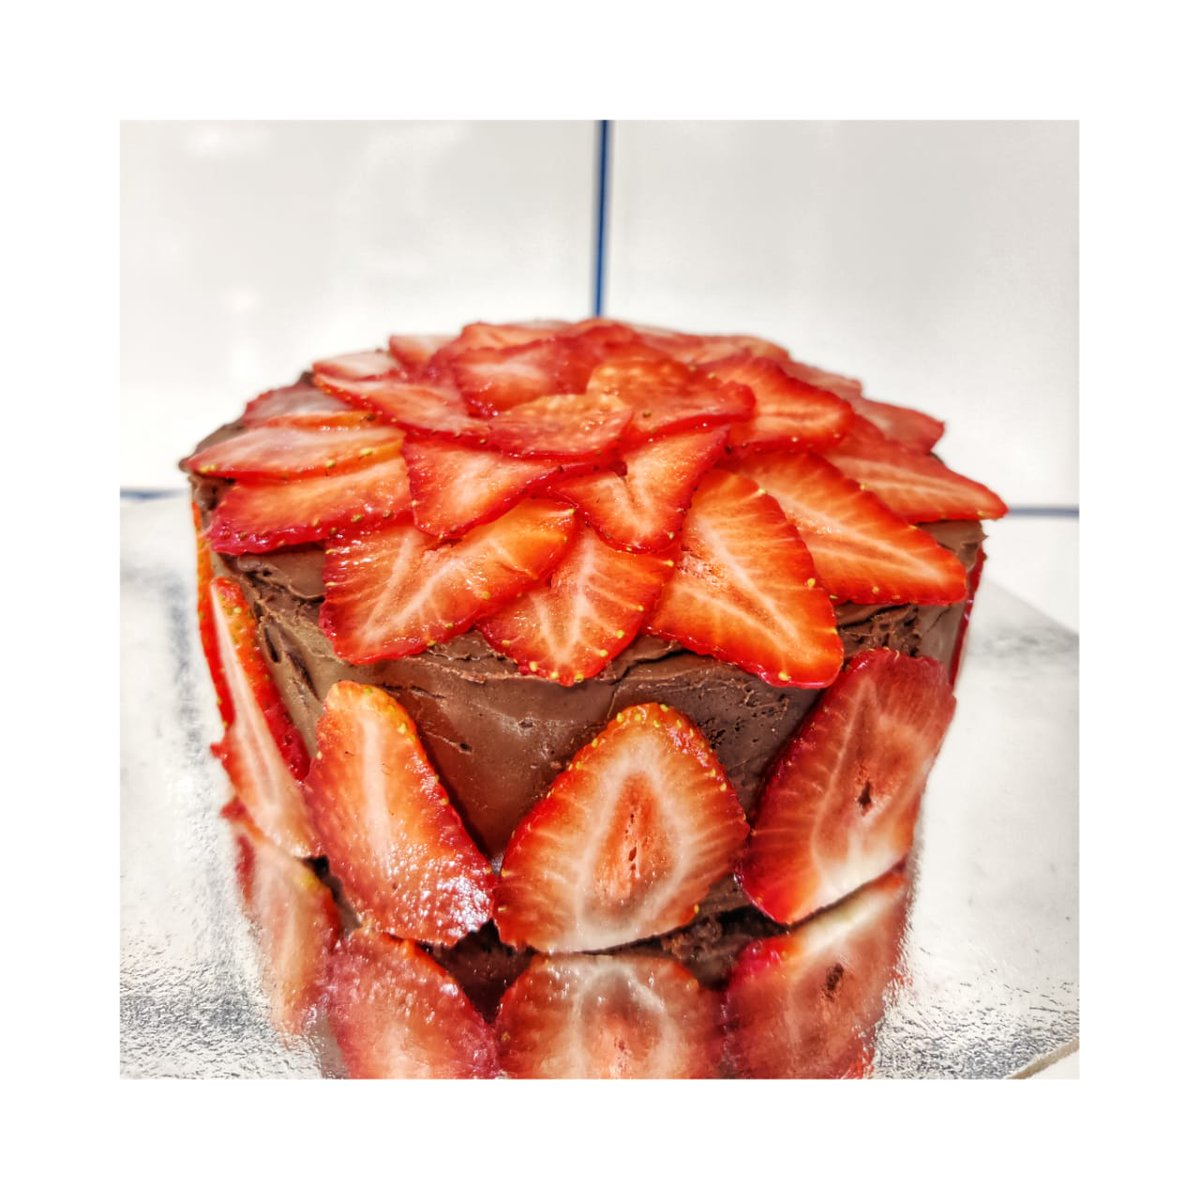 Strawberry and Belgian chocolate paired together make this the perfect cake for any occassion this season! Taking pre-orders 1kg: Rs. 1600/- 500g: Rs. 800/- @dojo_bakery ! Pls Dm/call 7977106226  @TwitterFood #Strawberries #belgianchocolate #lovethepairing #yummy #partytime